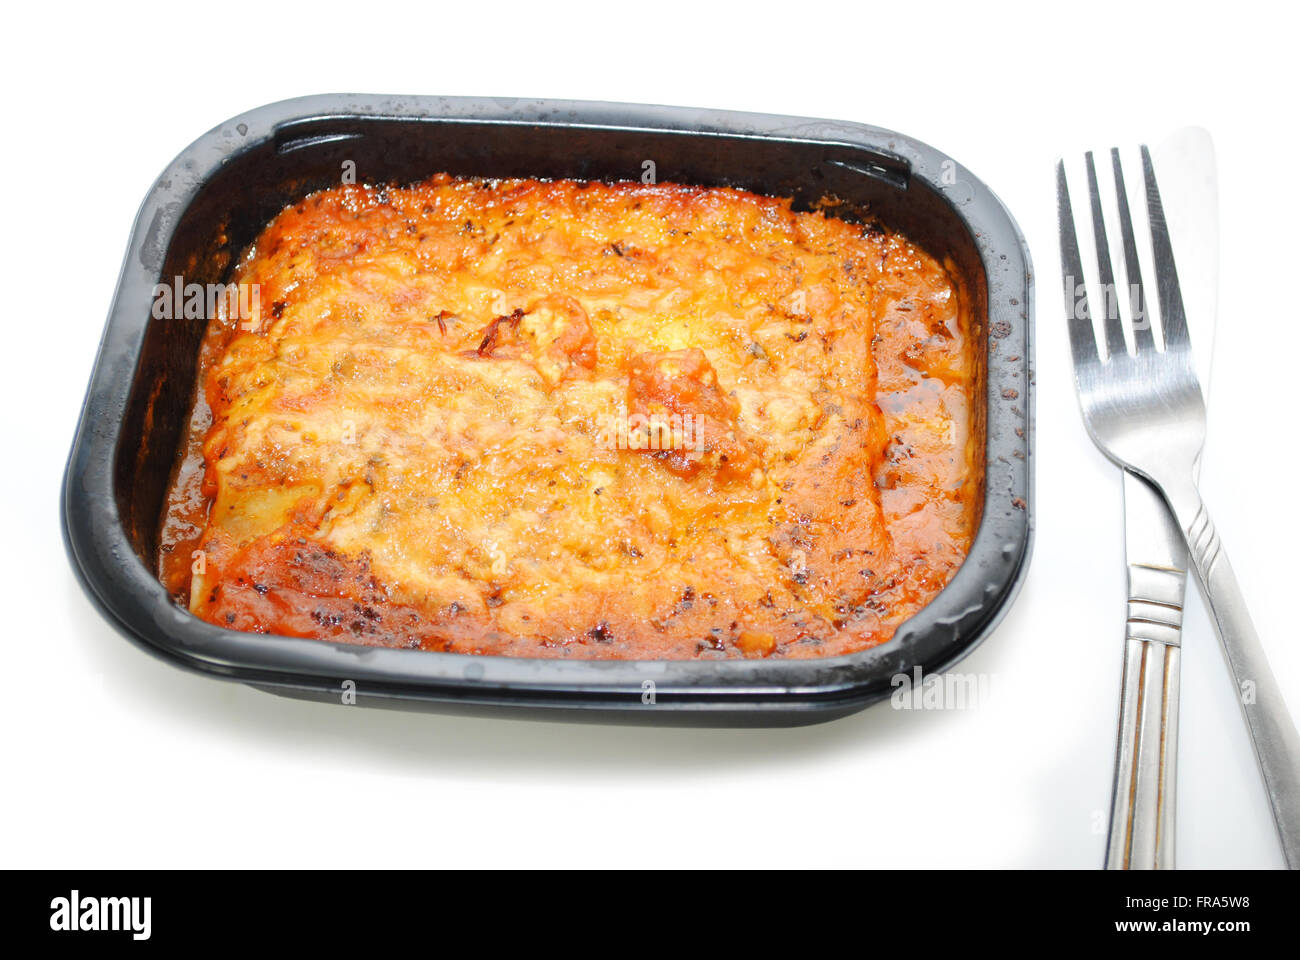 Take Out Pasta and Sauce Ready to be Eaten - Stock Image